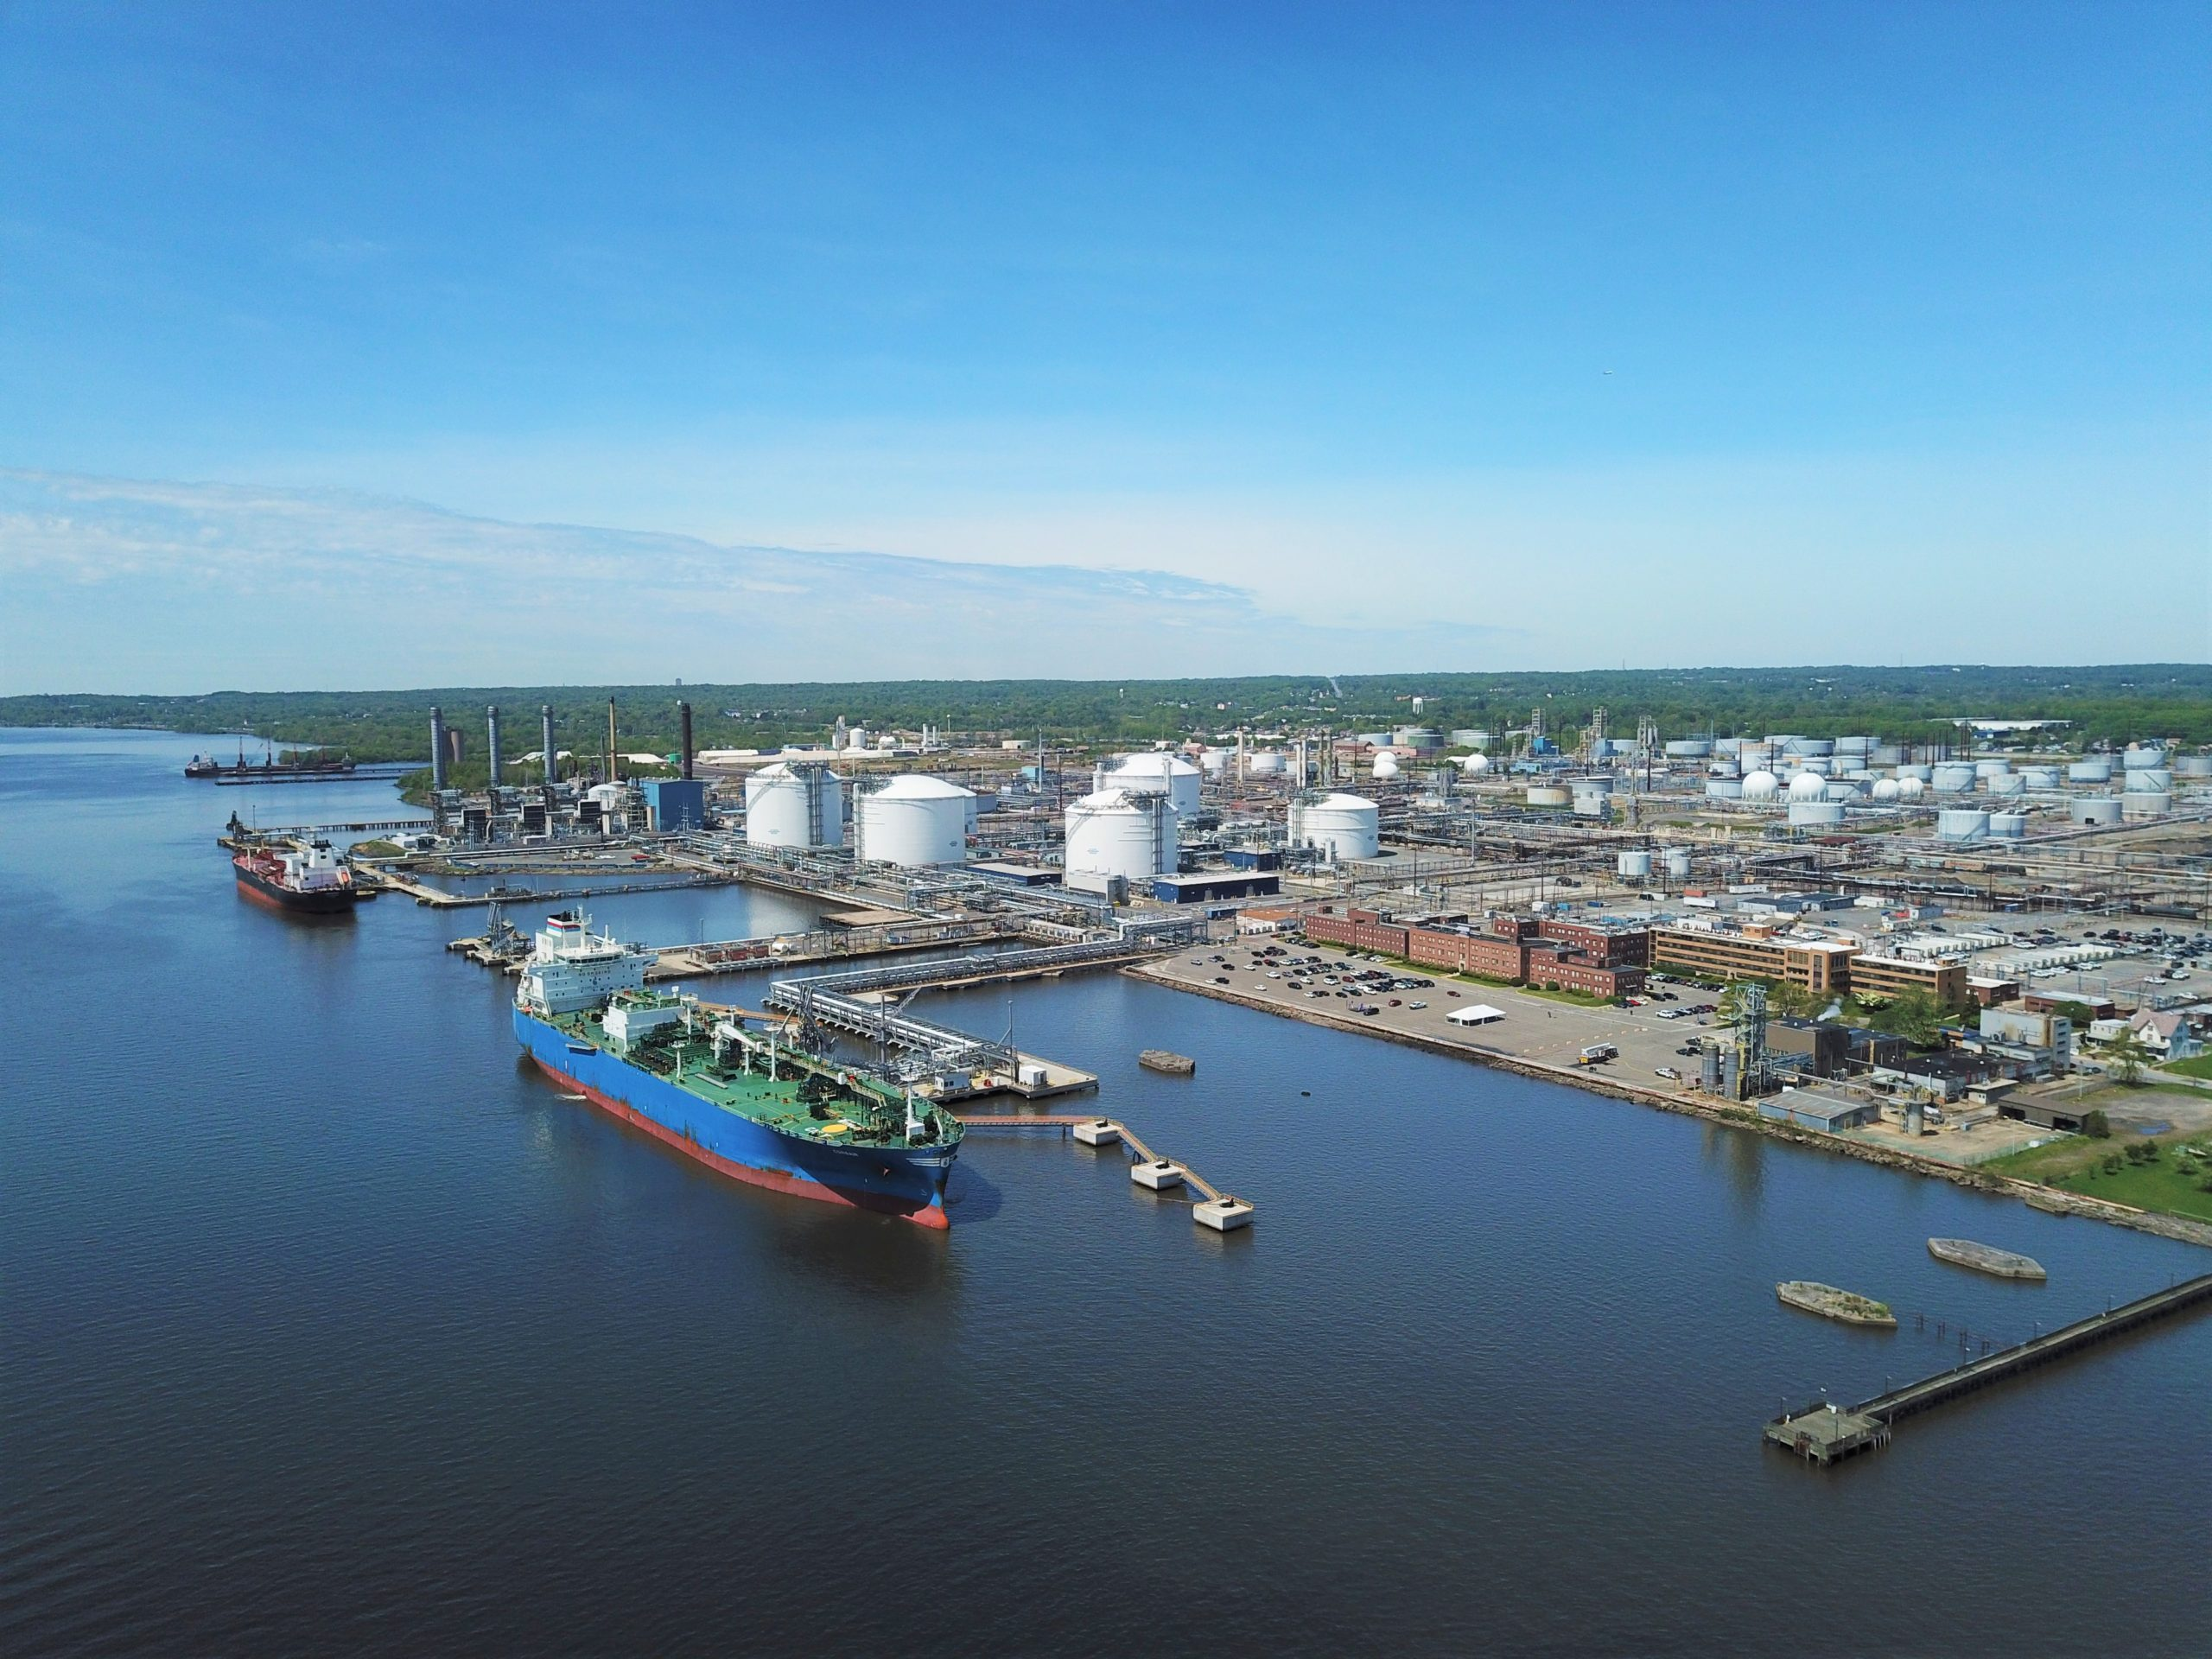 Impact of State's Increased Production of Natural Gas Seen at Marcus Hook Industrial Complex